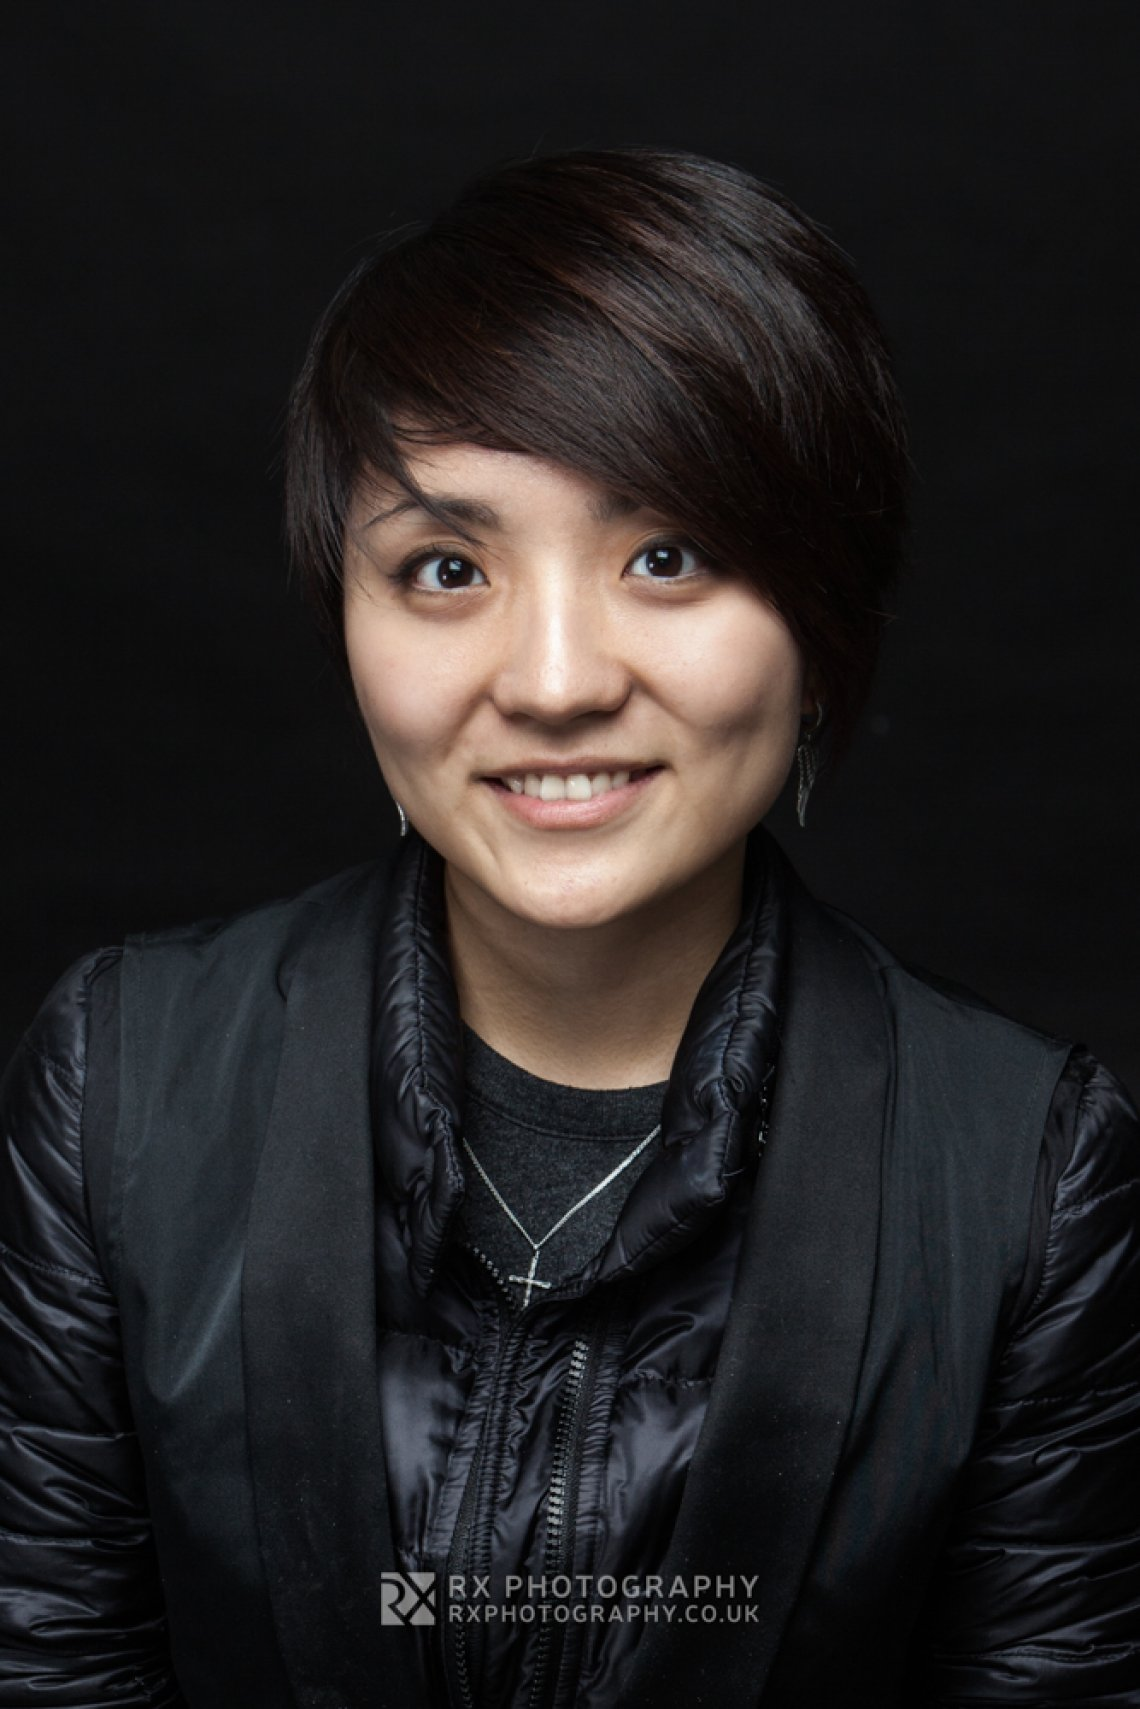 RX Photography portrait headshot of young asian female professional